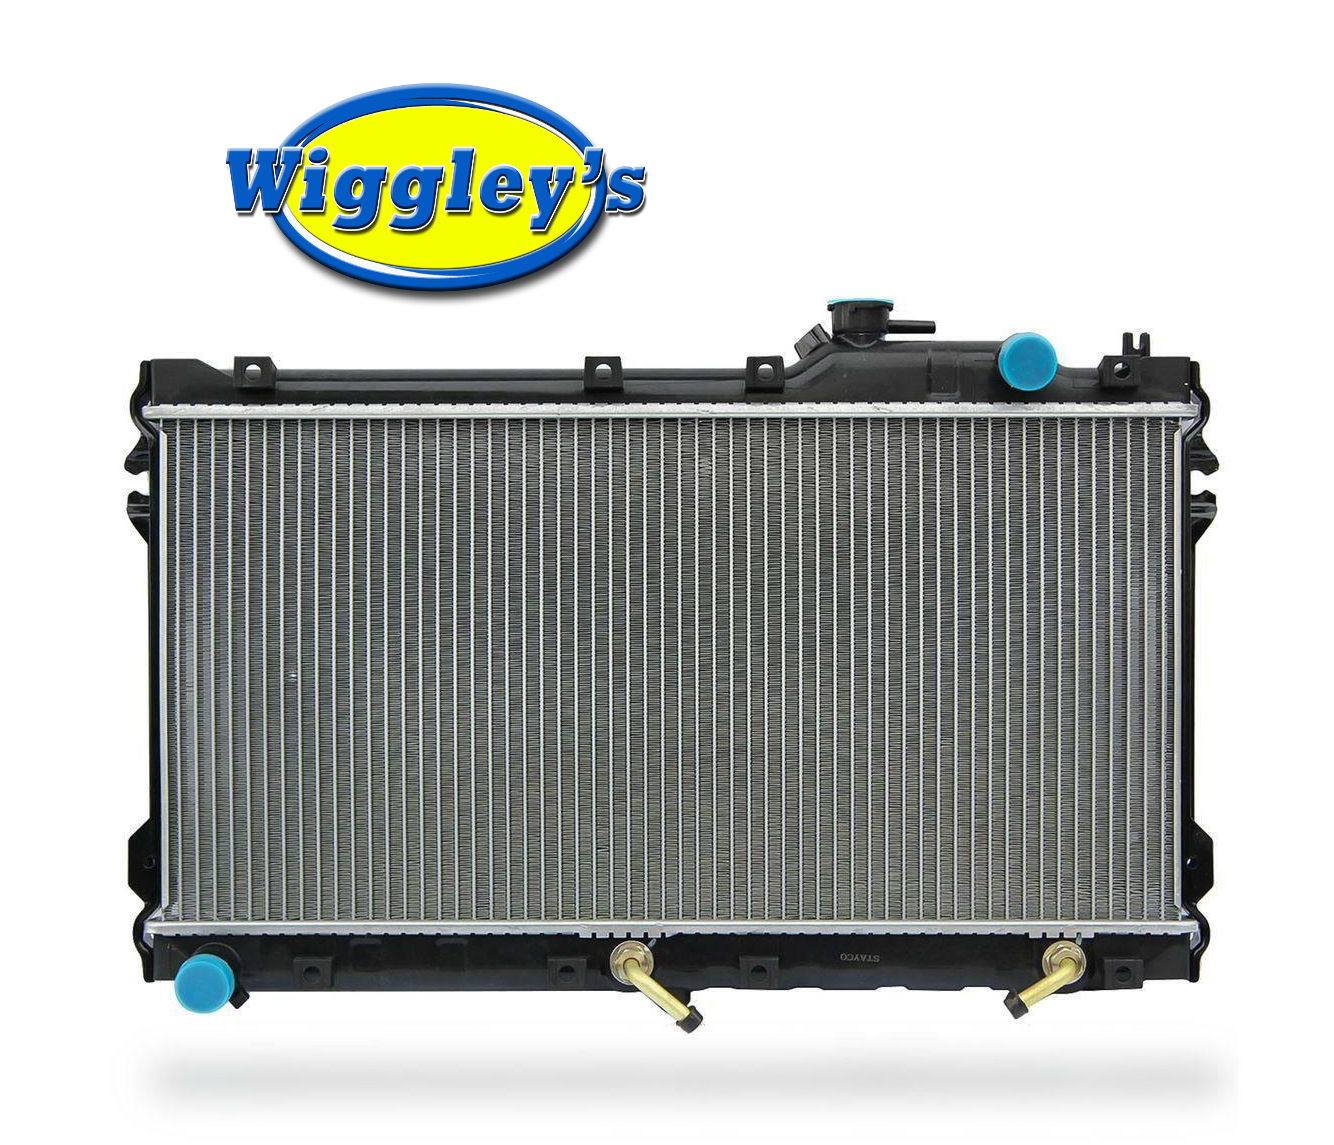 RADIATOR CU1140 FOR 90 91 92 93 94 95 96 97 MAZDA MIATA 1.8L MANUAL/TRANS